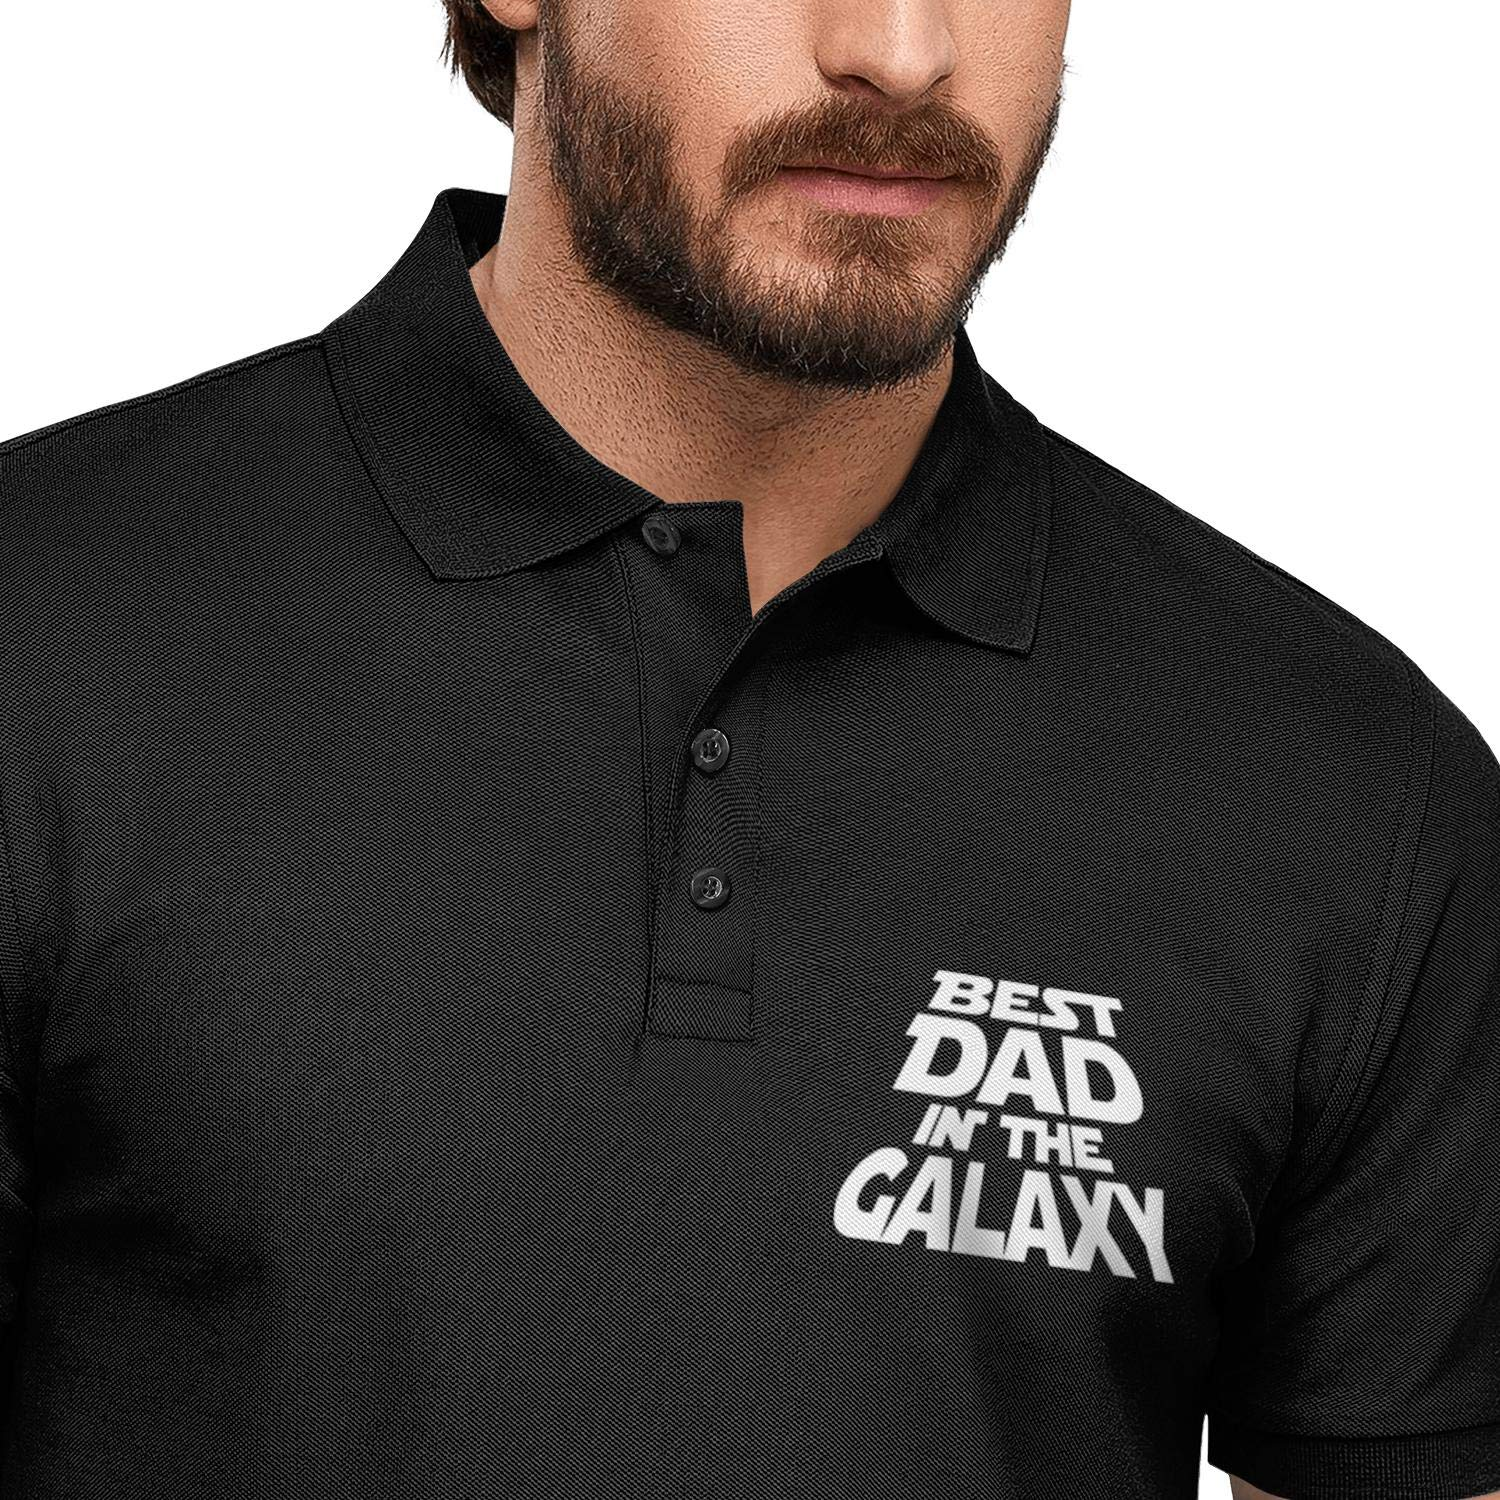 WYFEN Men Printed Polo Shirt Best Dad in The Galaxy Fathers Day Funny Short Sleeve T-Shirt